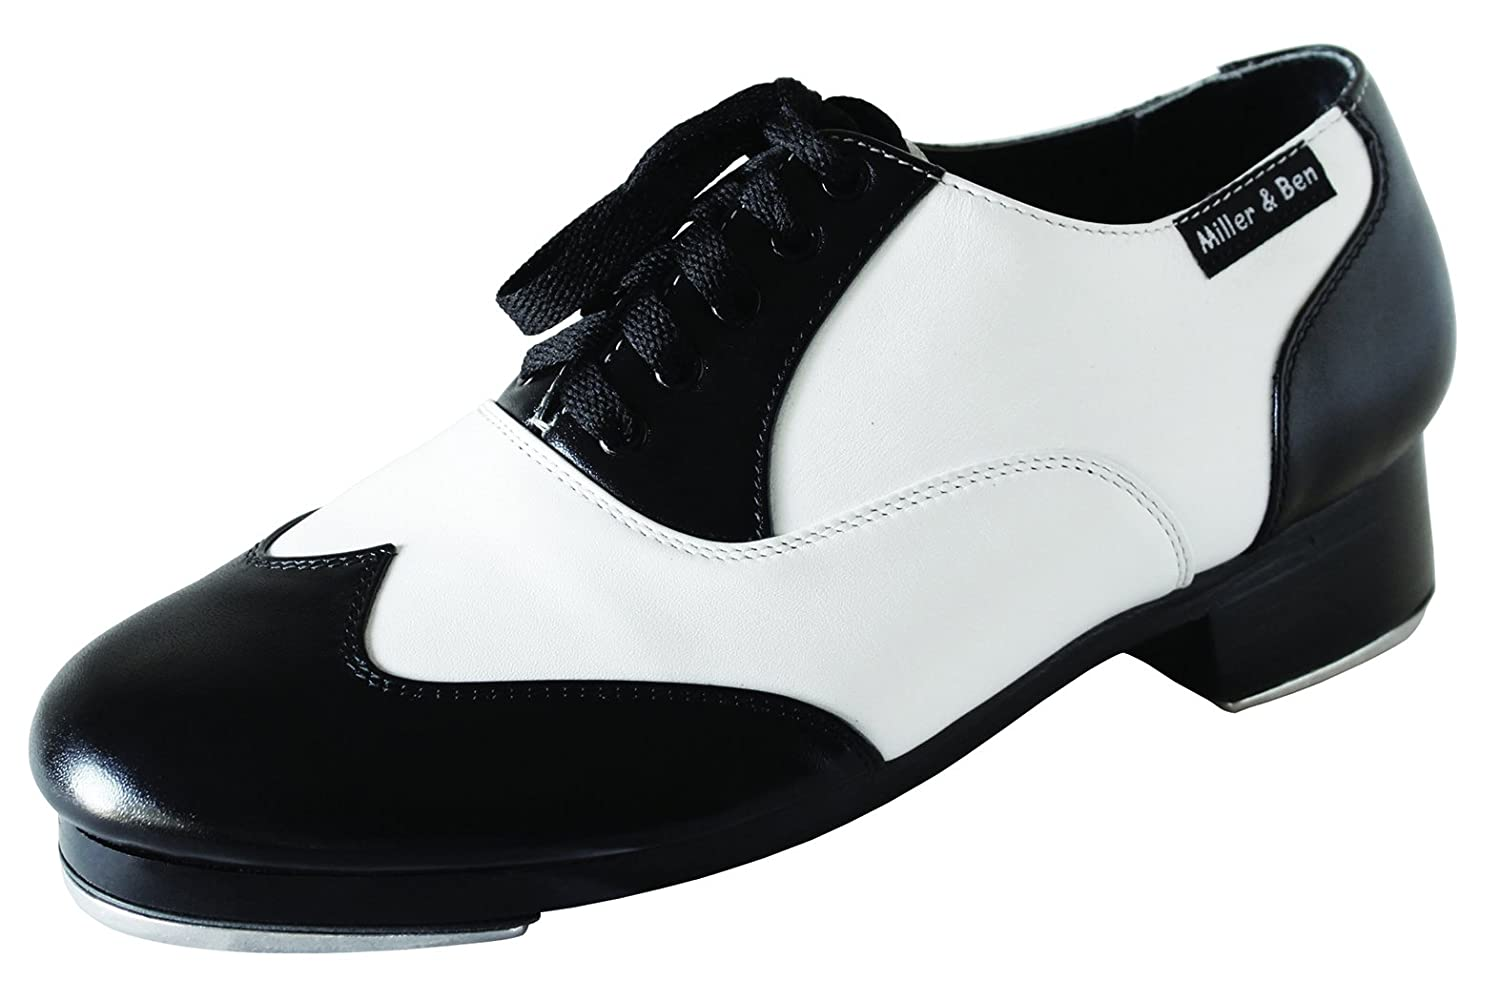 Retro Style Dance Shoes Miller & Ben Tap Shoes Jazz-Tap Master Black & White - STANDARD SIZES $285.00 AT vintagedancer.com